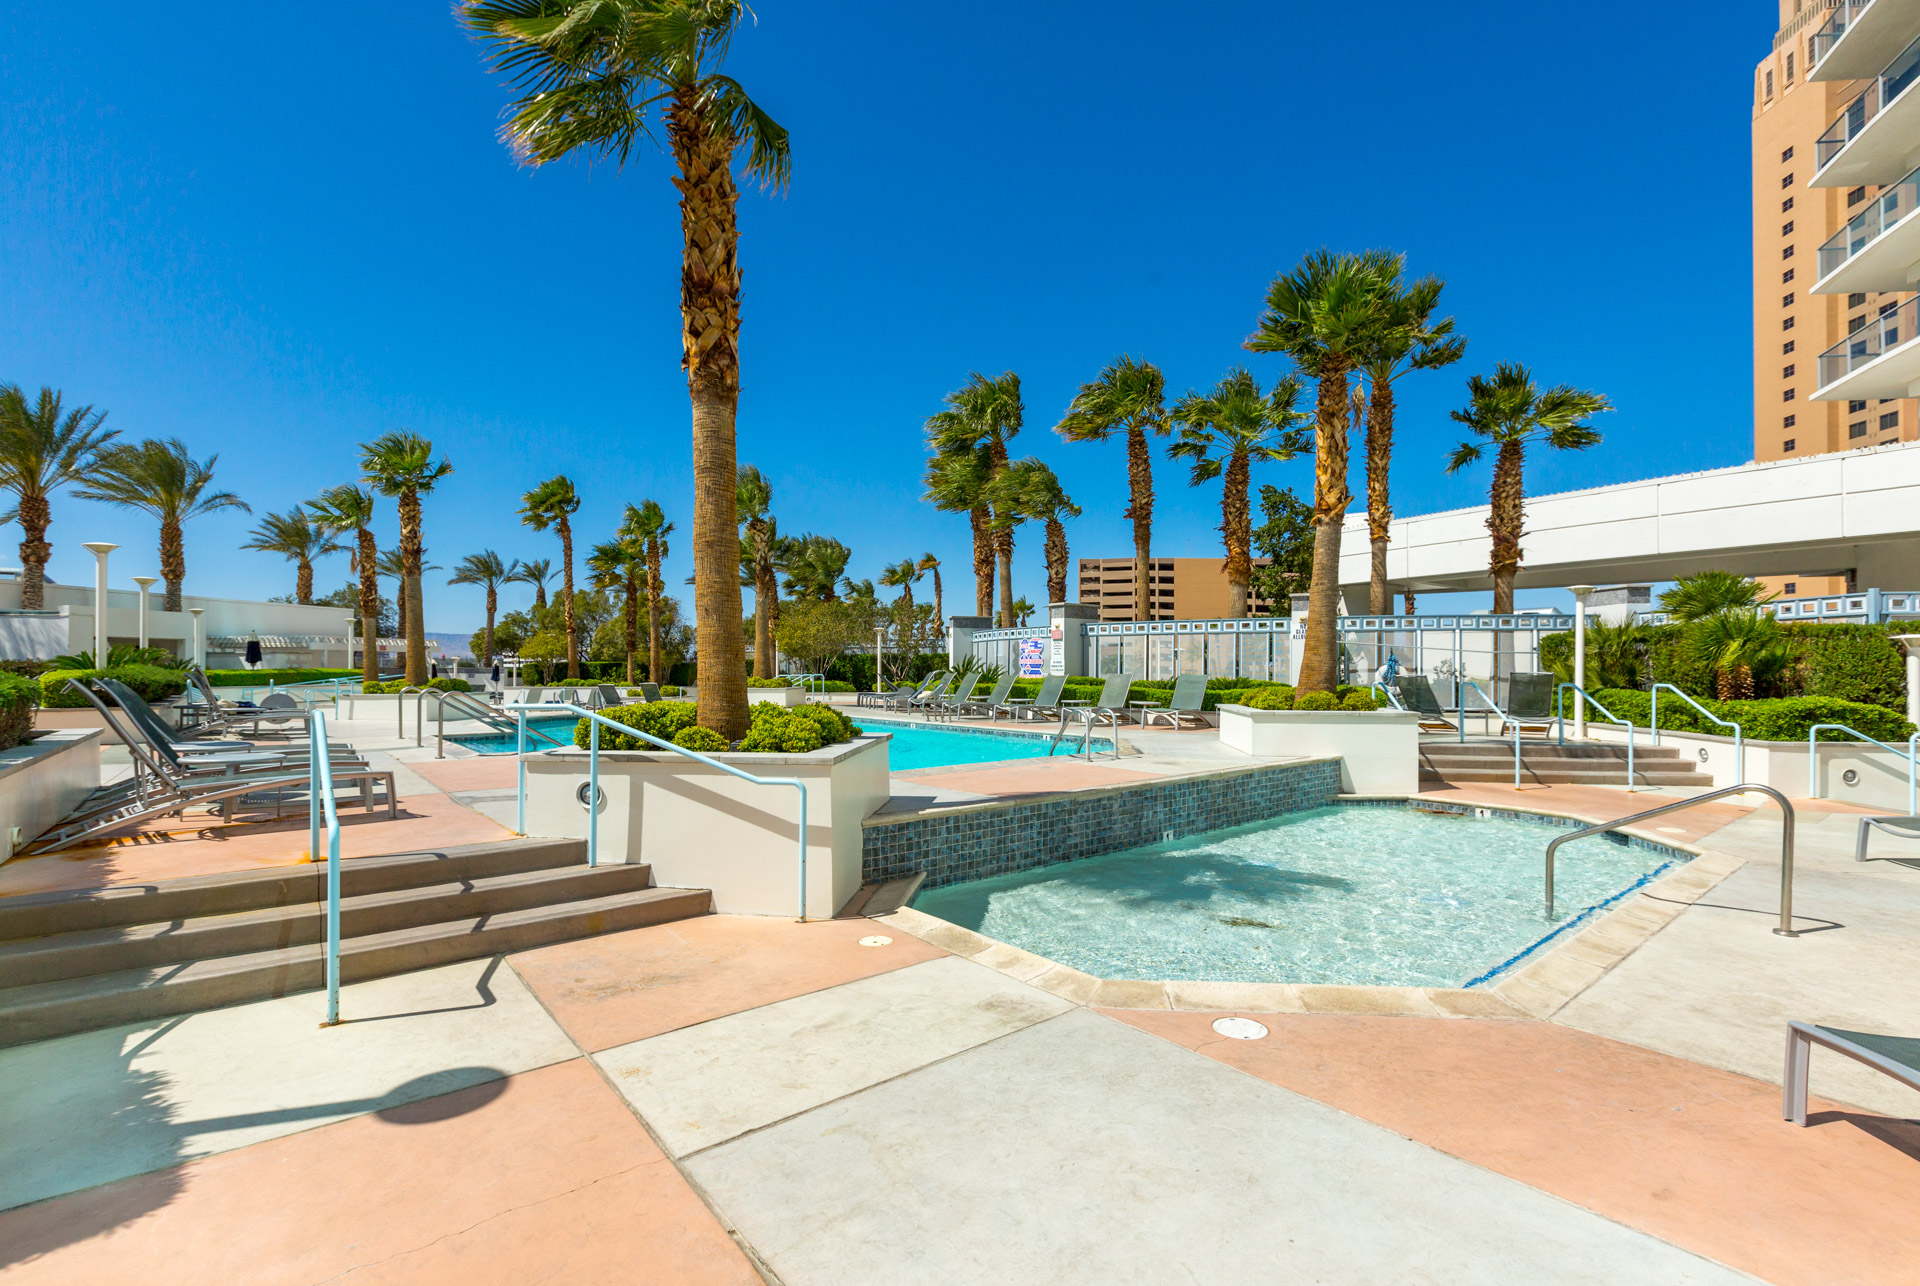 sky las vegas outdoor resort-style swimming pool deck